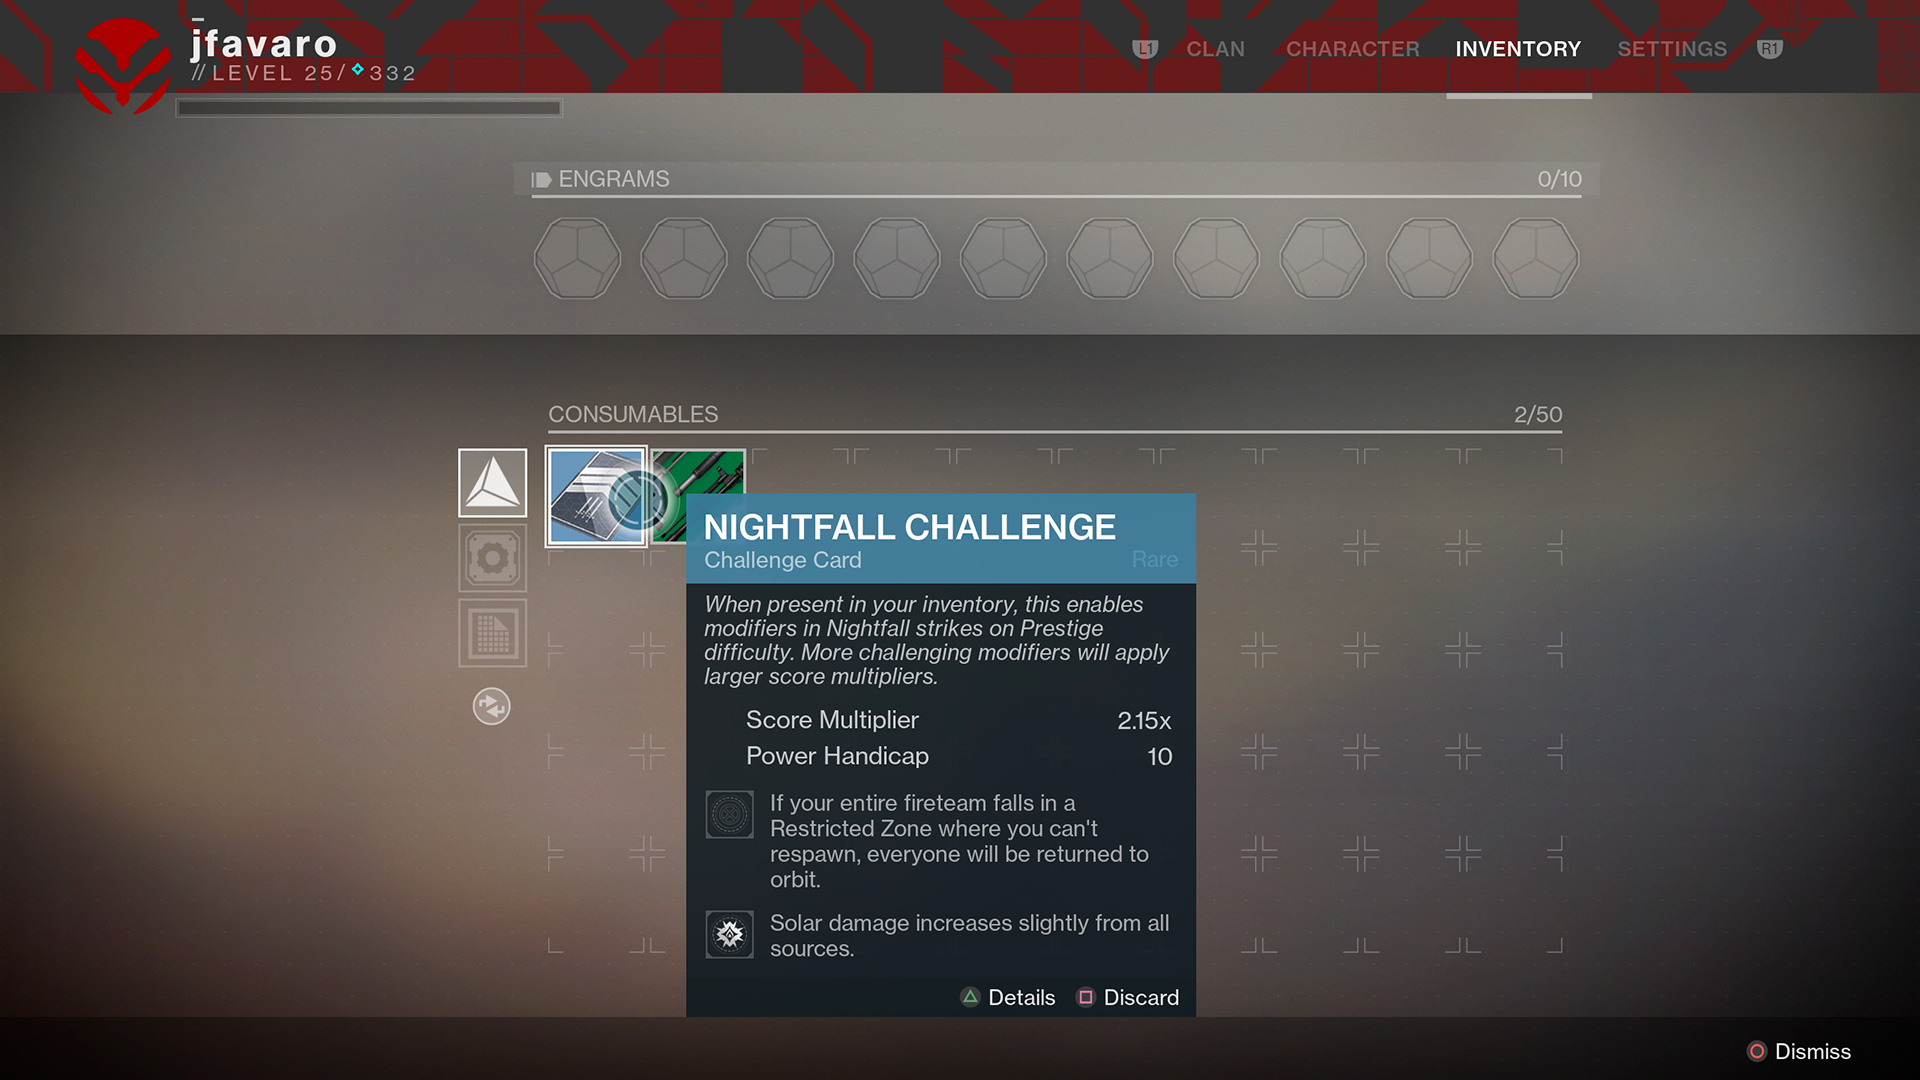 why is there no matchmaking for nightfall strikes